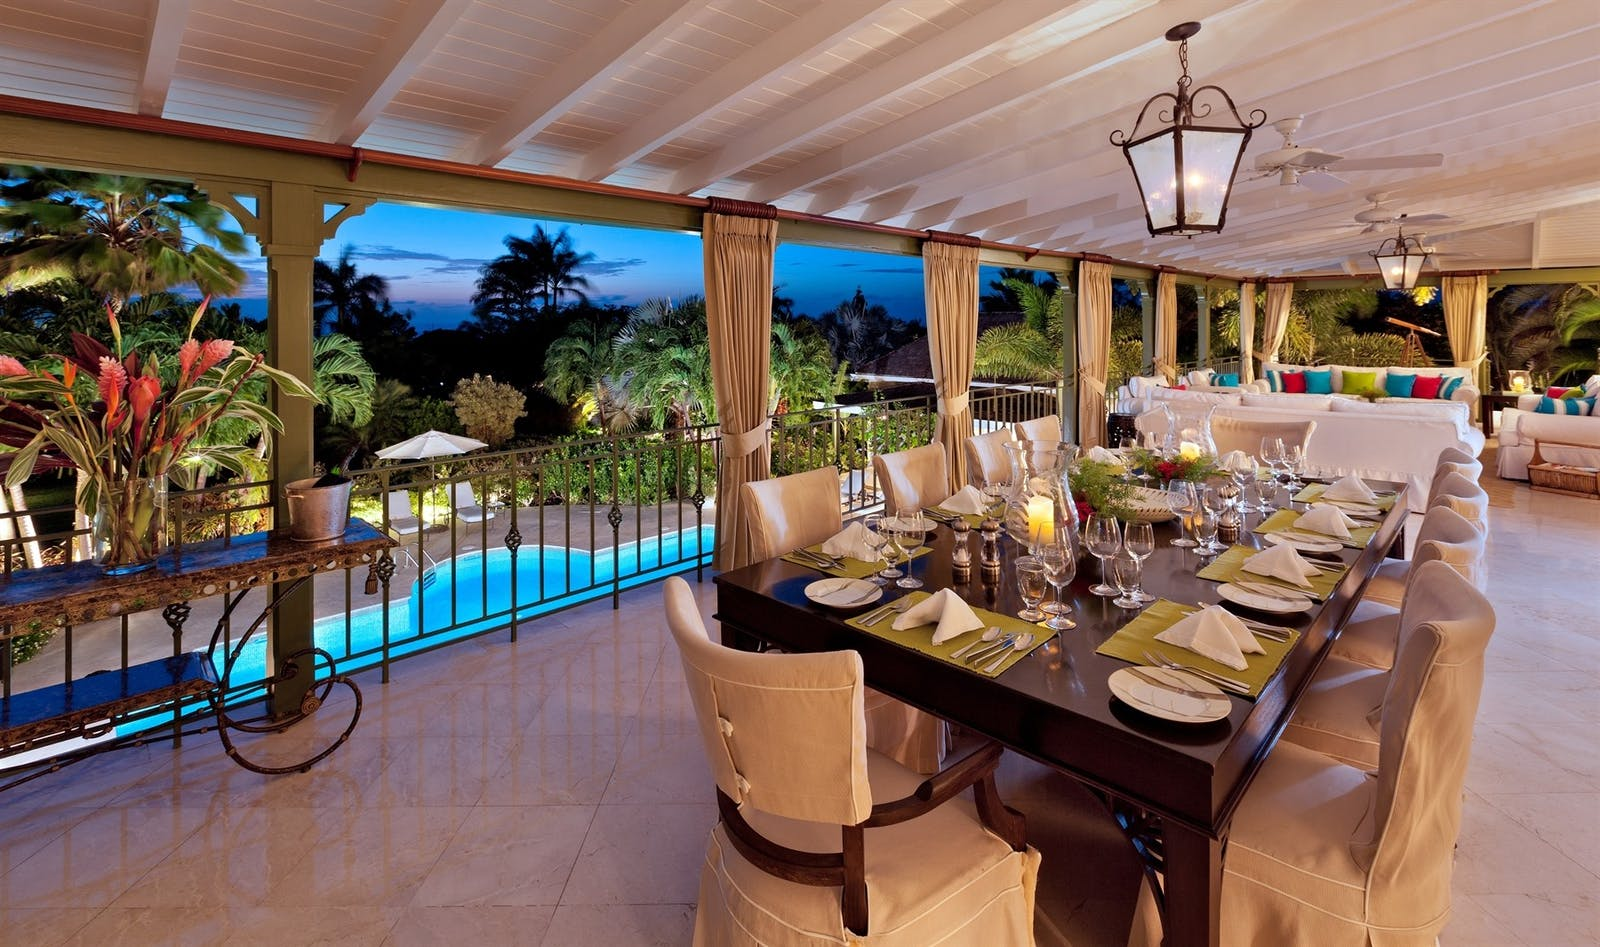 patio dining at eden villa sugar hill barbados